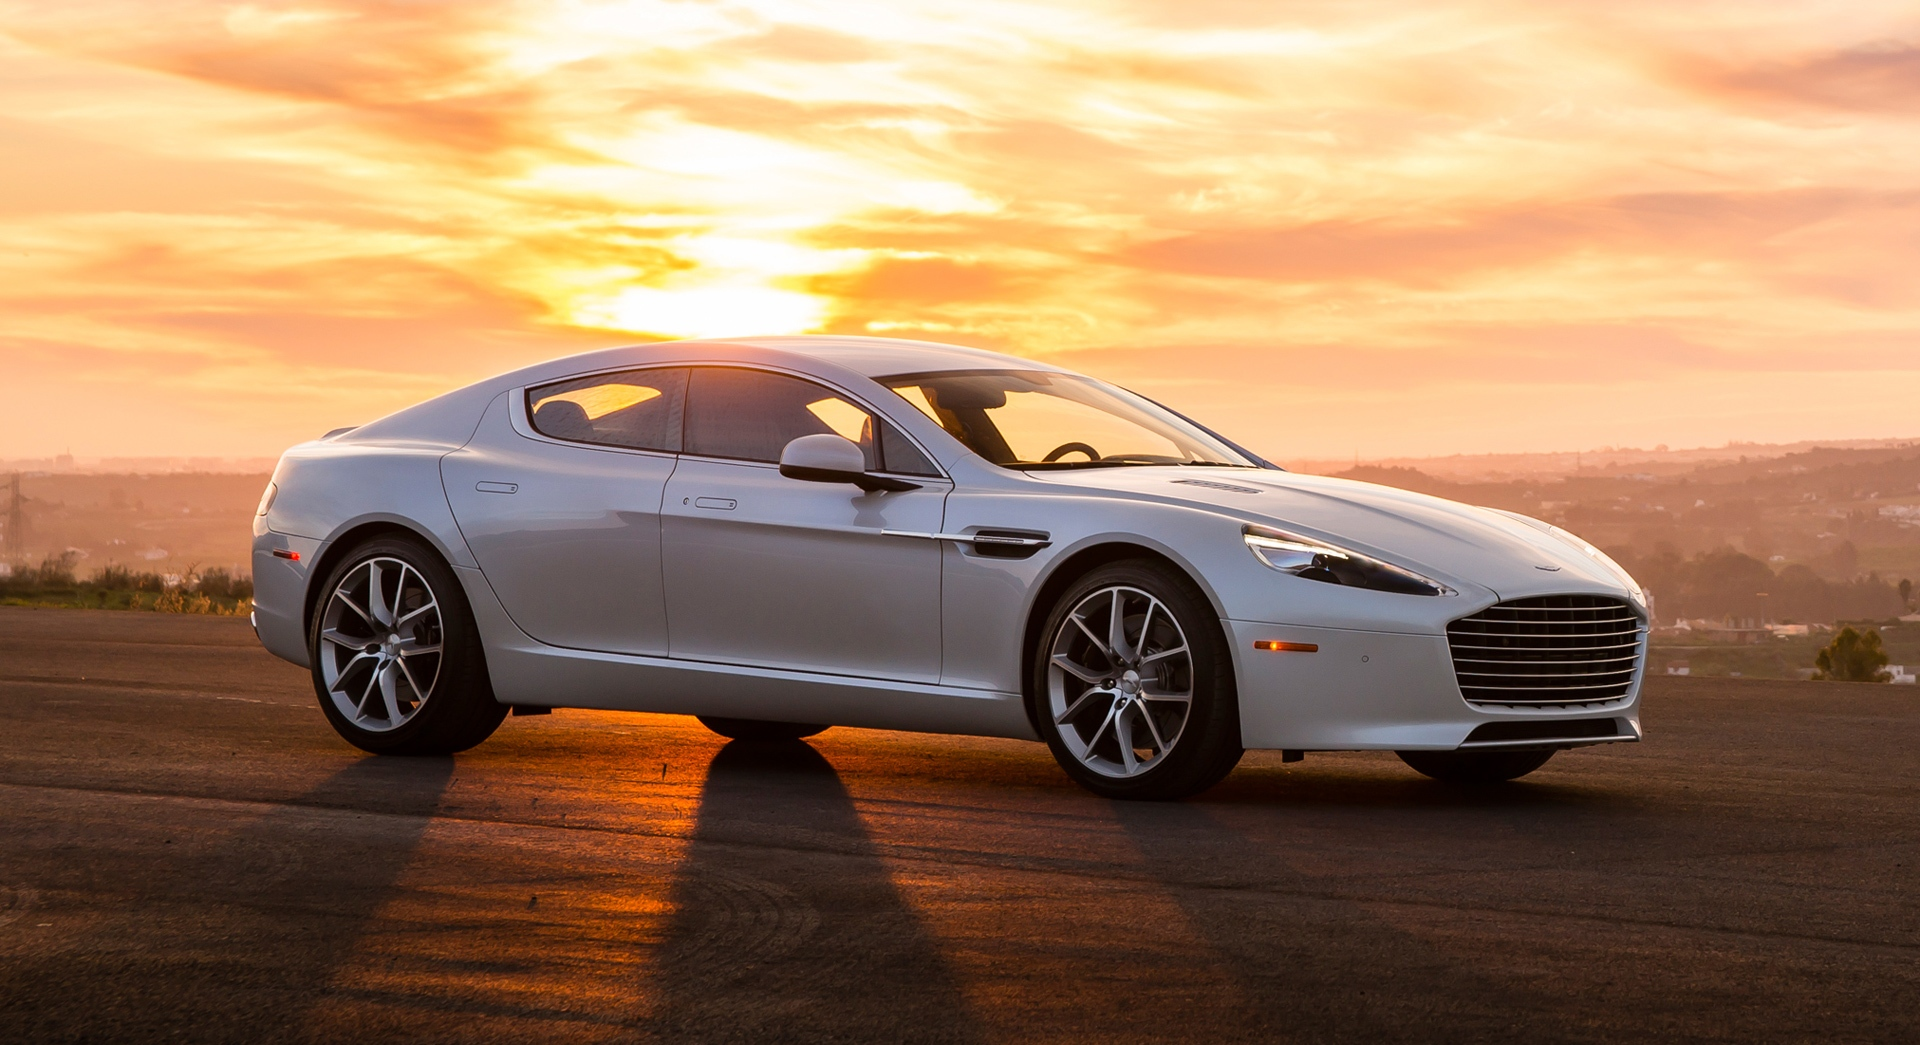 aston martin rapide sunset